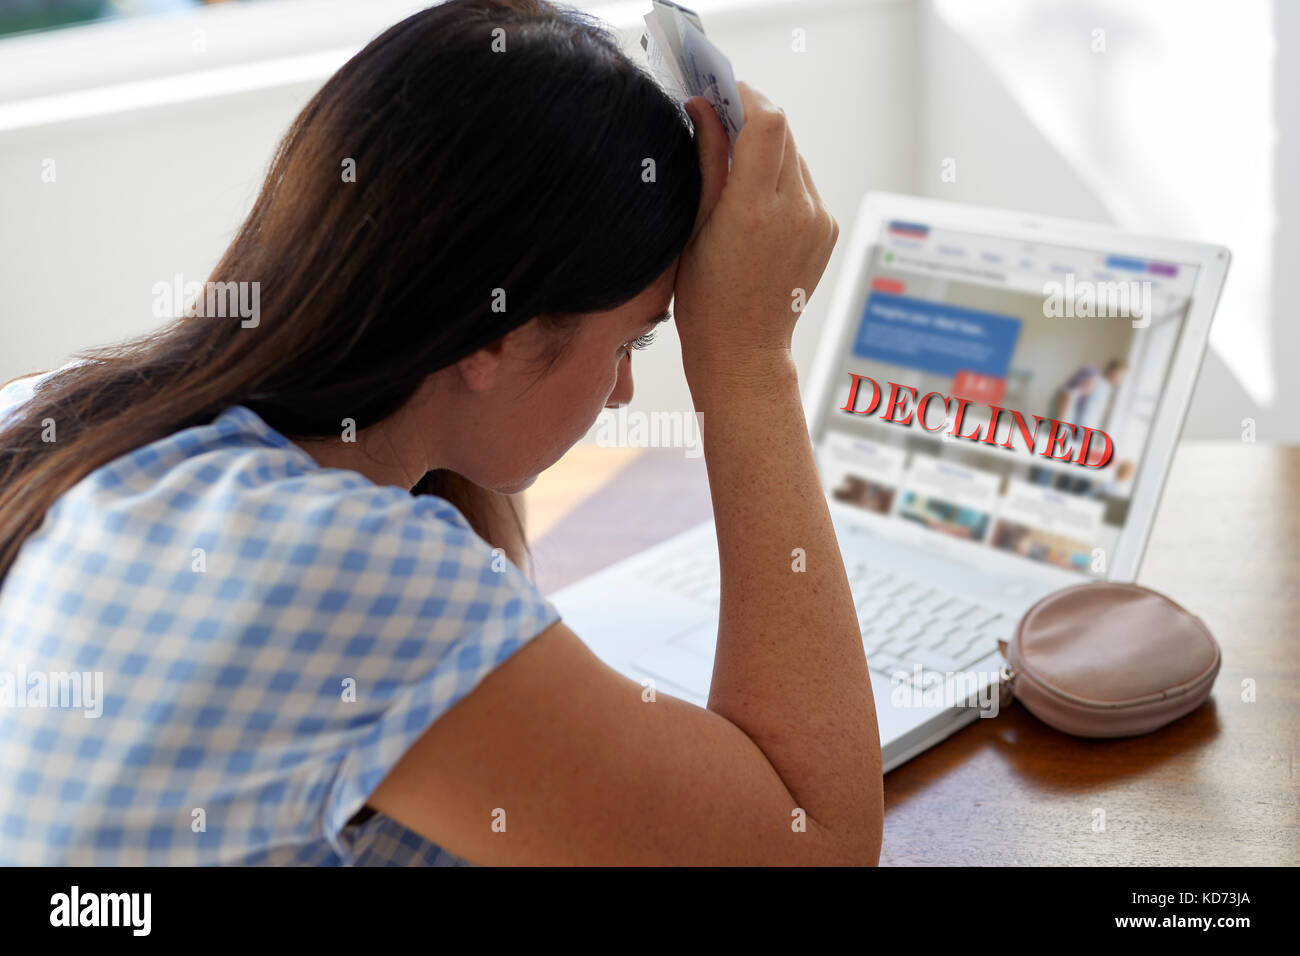 Woman with account being declined - Stock Image